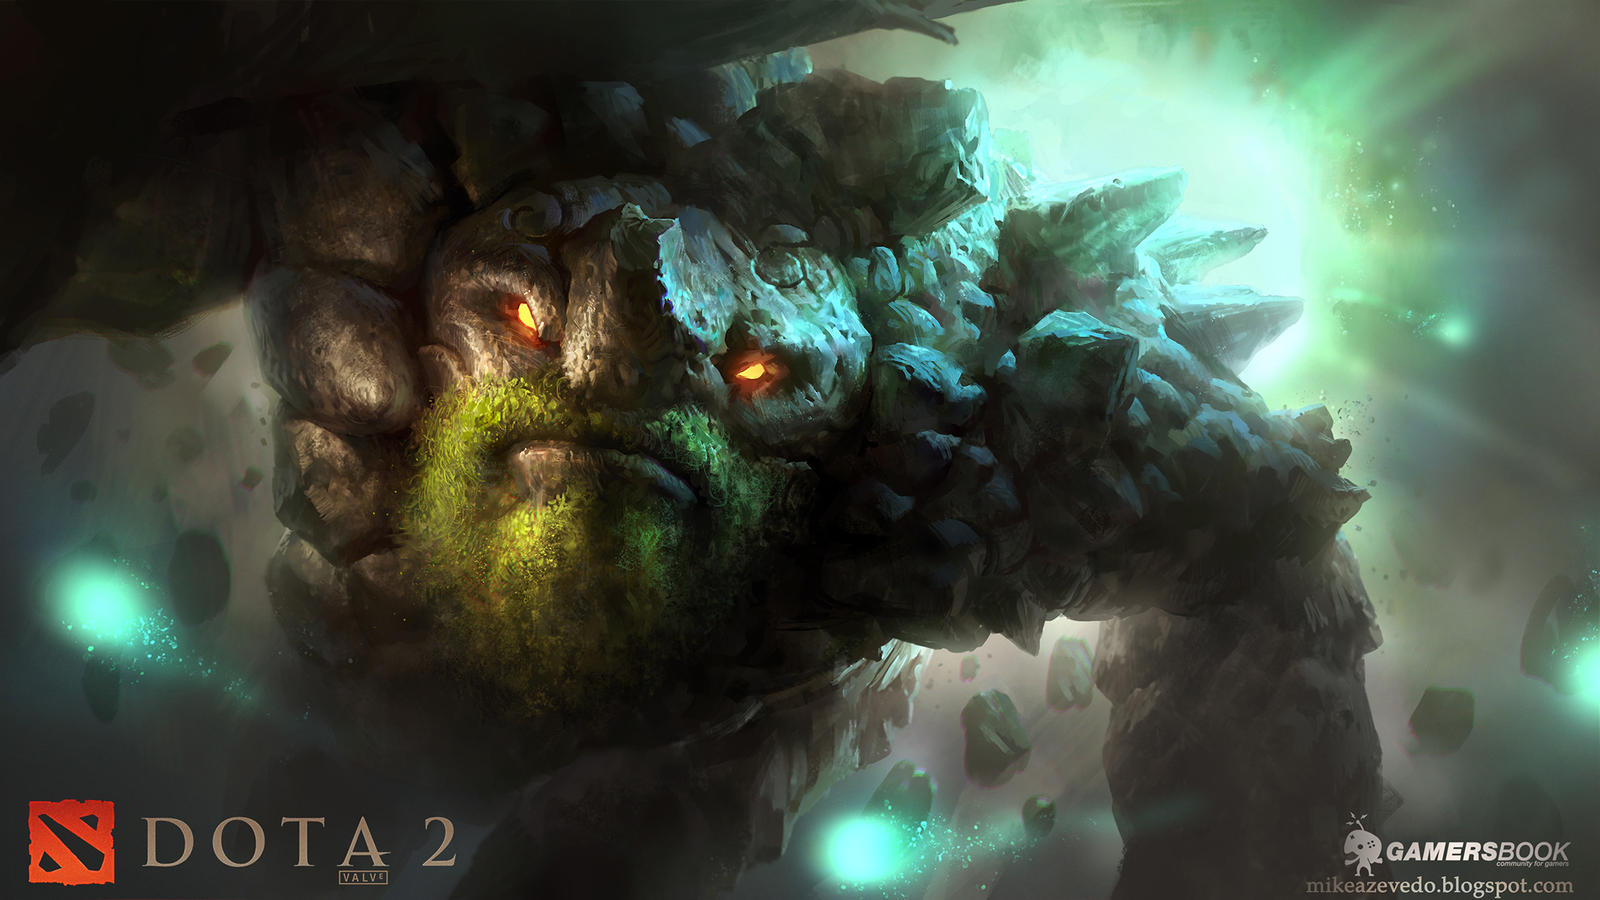 Let S Make A Dota 2 Wallpaper Collection What Are Your Favorites